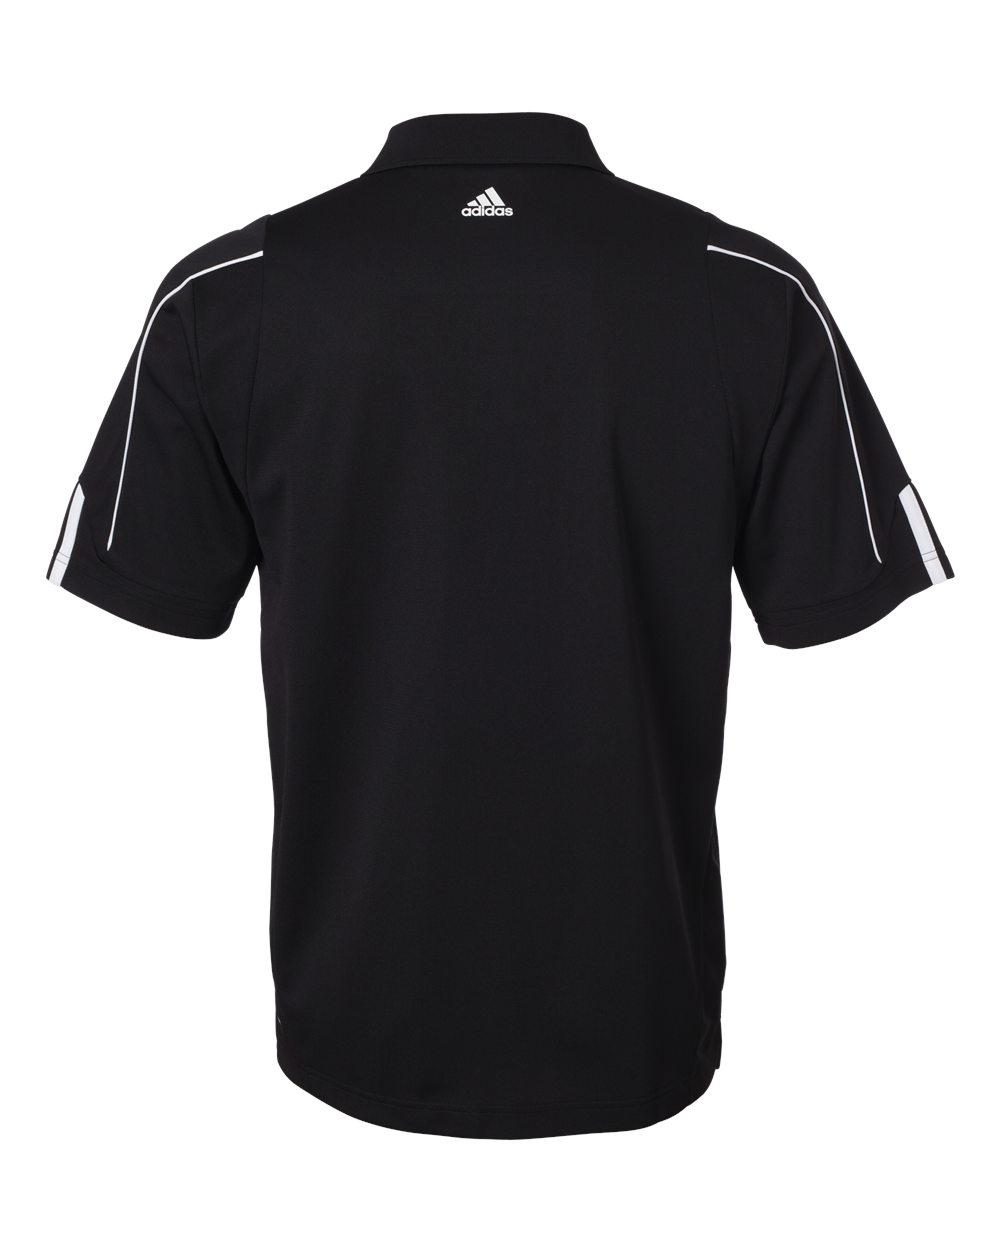 Adidas-Mens-Climalite-3-Stripes-Cuff-Sport-Shirt-A76-up-to-4XL miniature 7